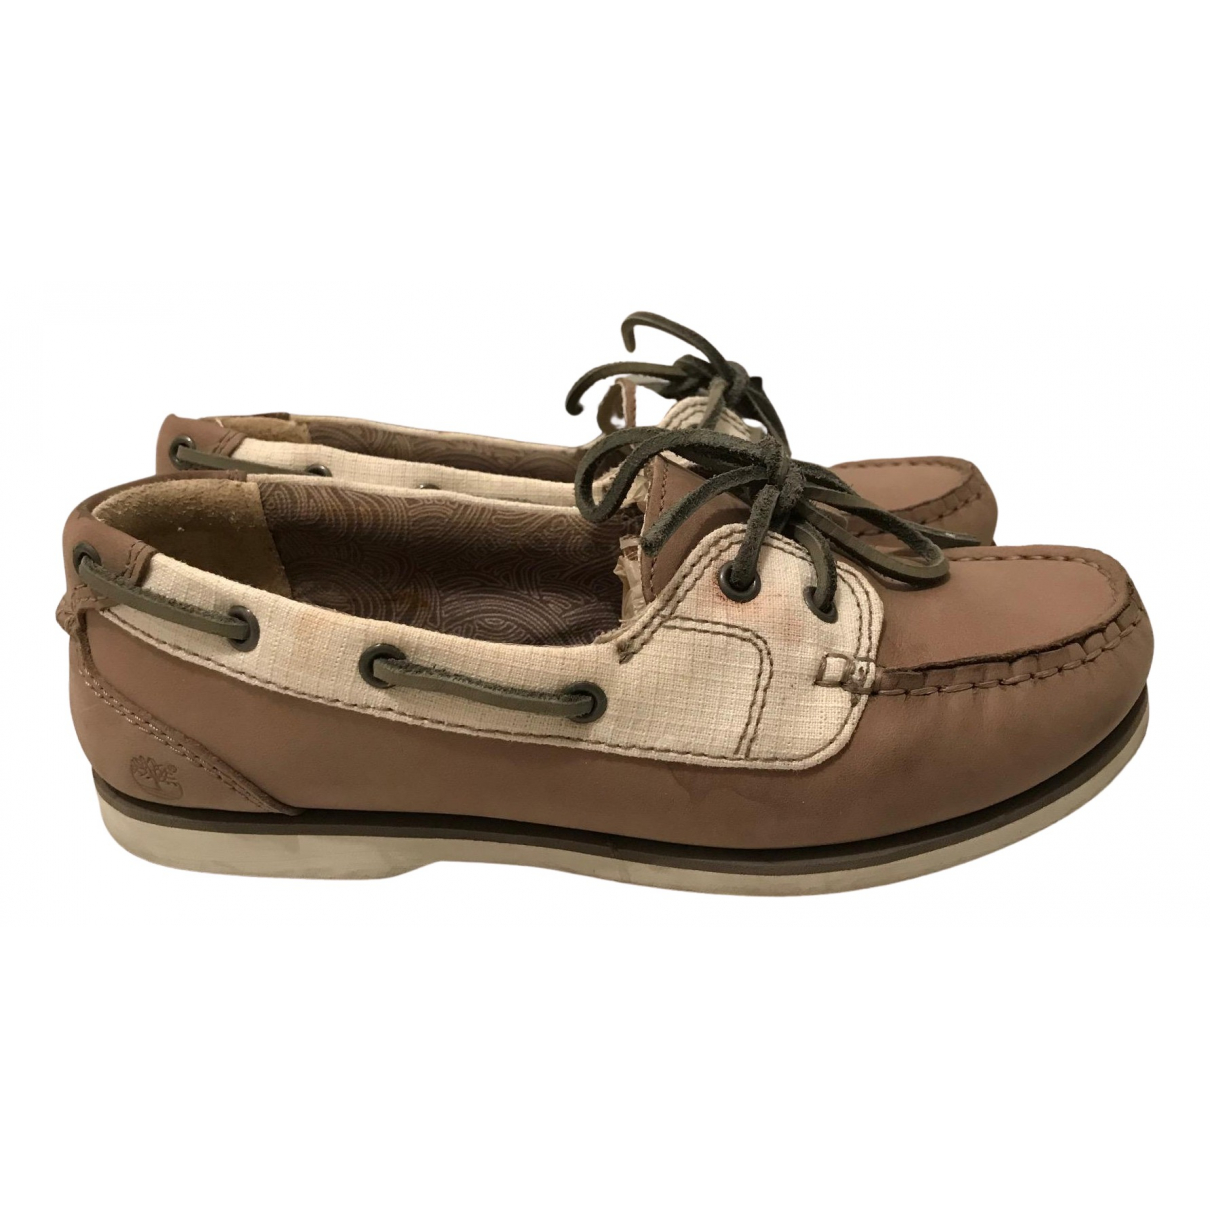 Timberland N Multicolour Leather Flats for Women 35.5 EU